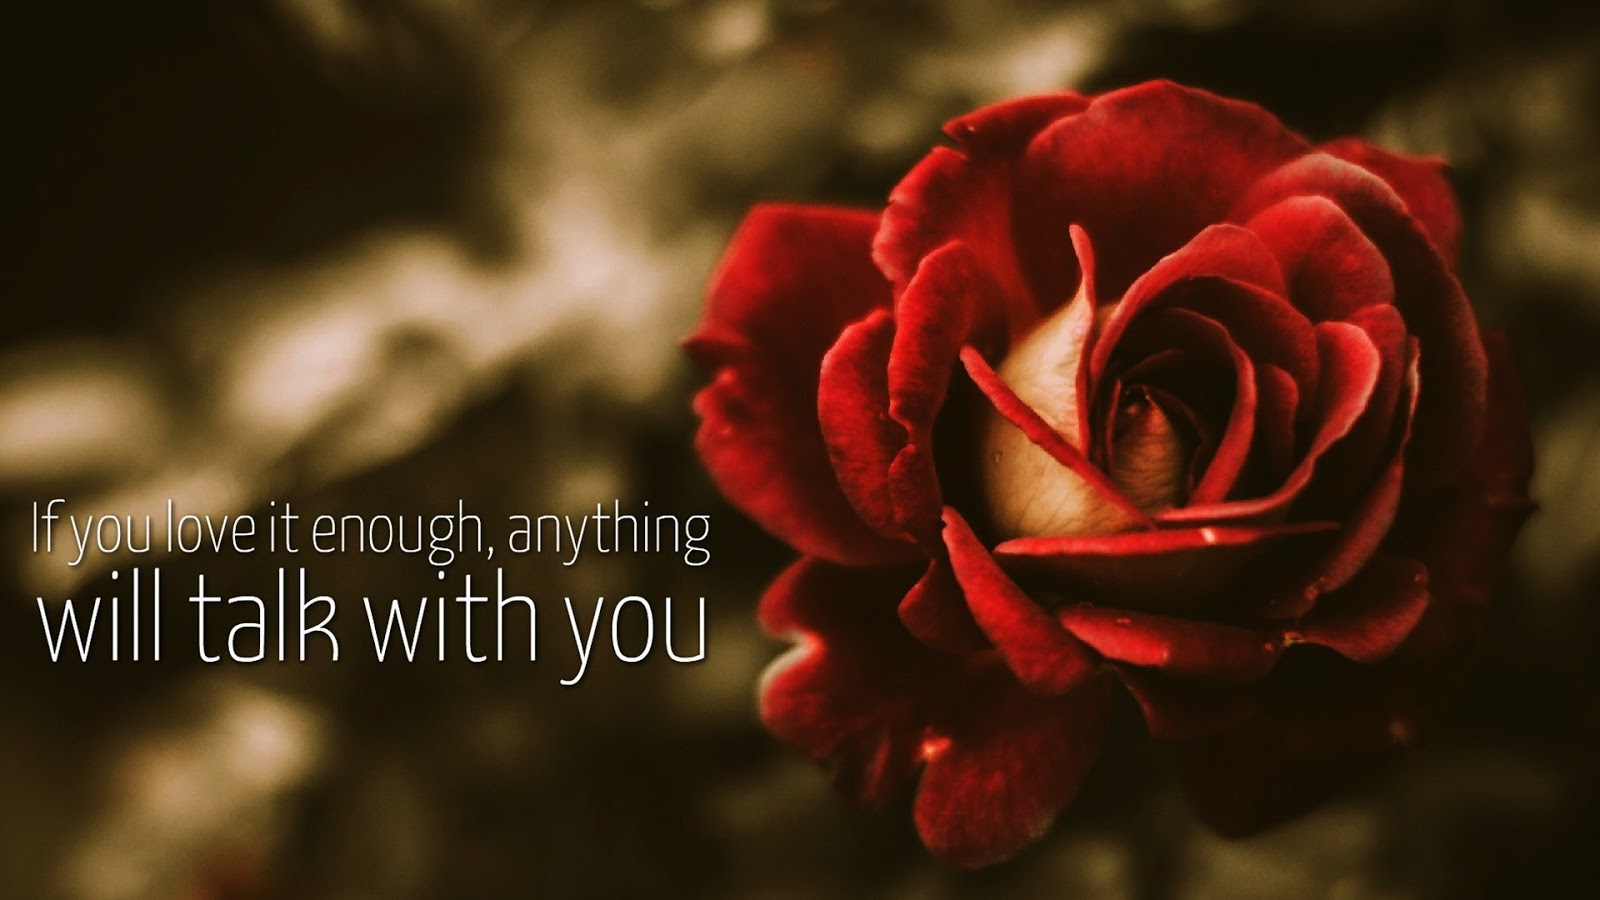 best-images-of-love-download-HD-Love-Images-With-Love-Quotes-Images-And-Love-Couple-Images-Best-wallpaper-wp3403166